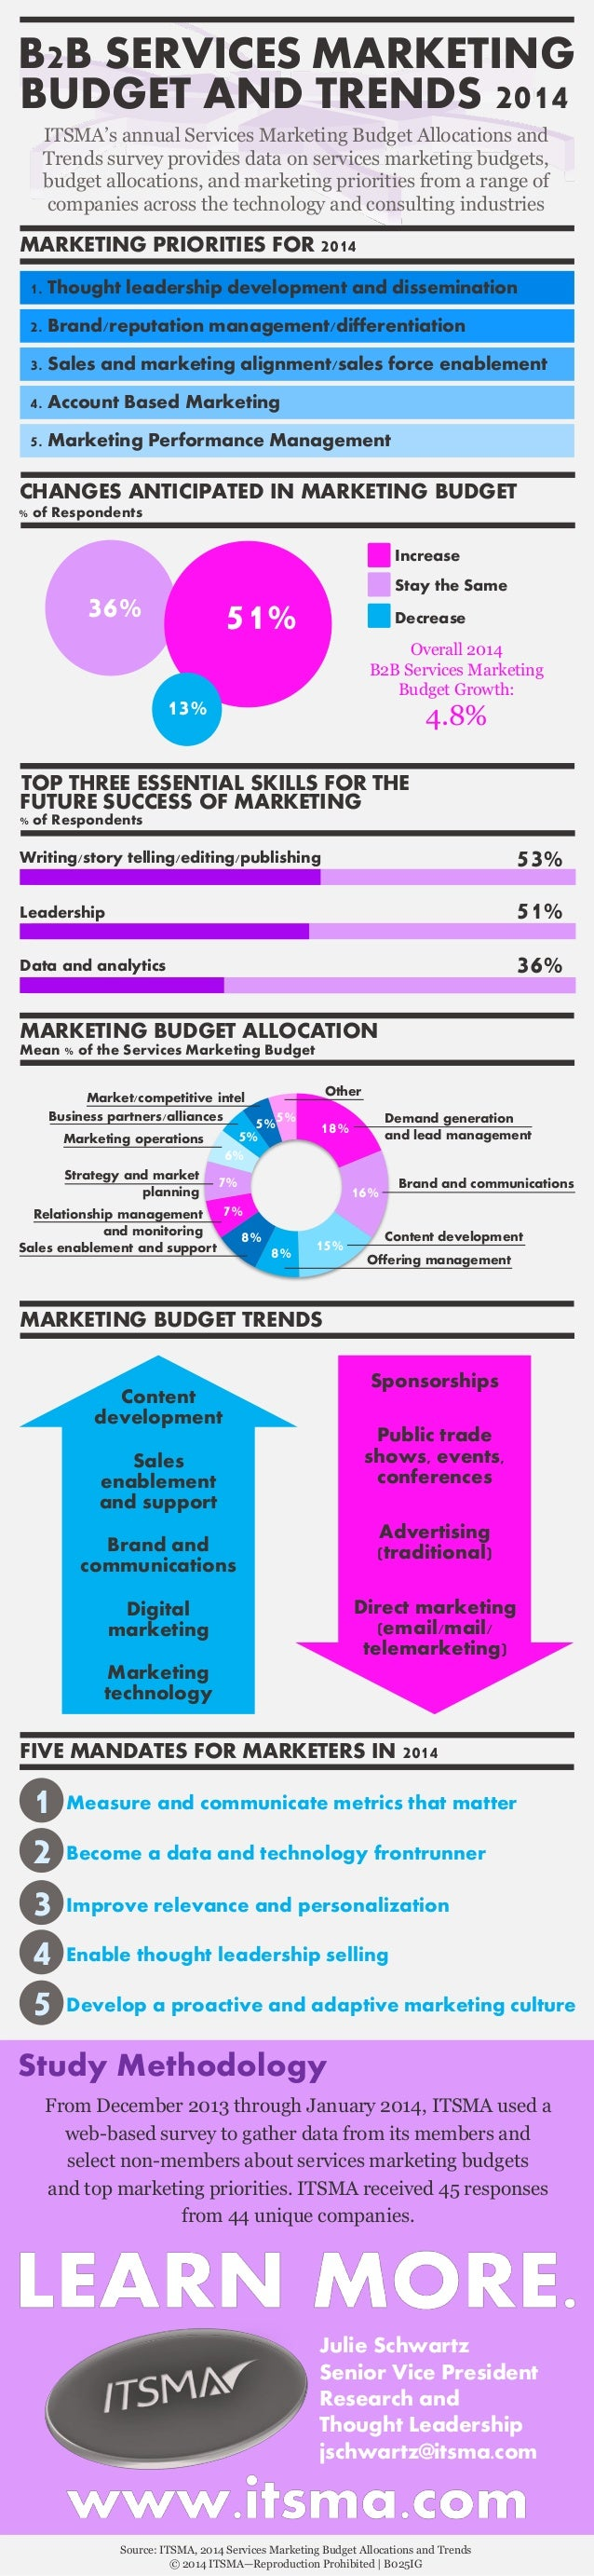 B2B SERVICES MARKETING BUDGET AND TRENDS 2014 ITSMA's annual Services Marketing Budget Allocations and Trends survey provi...